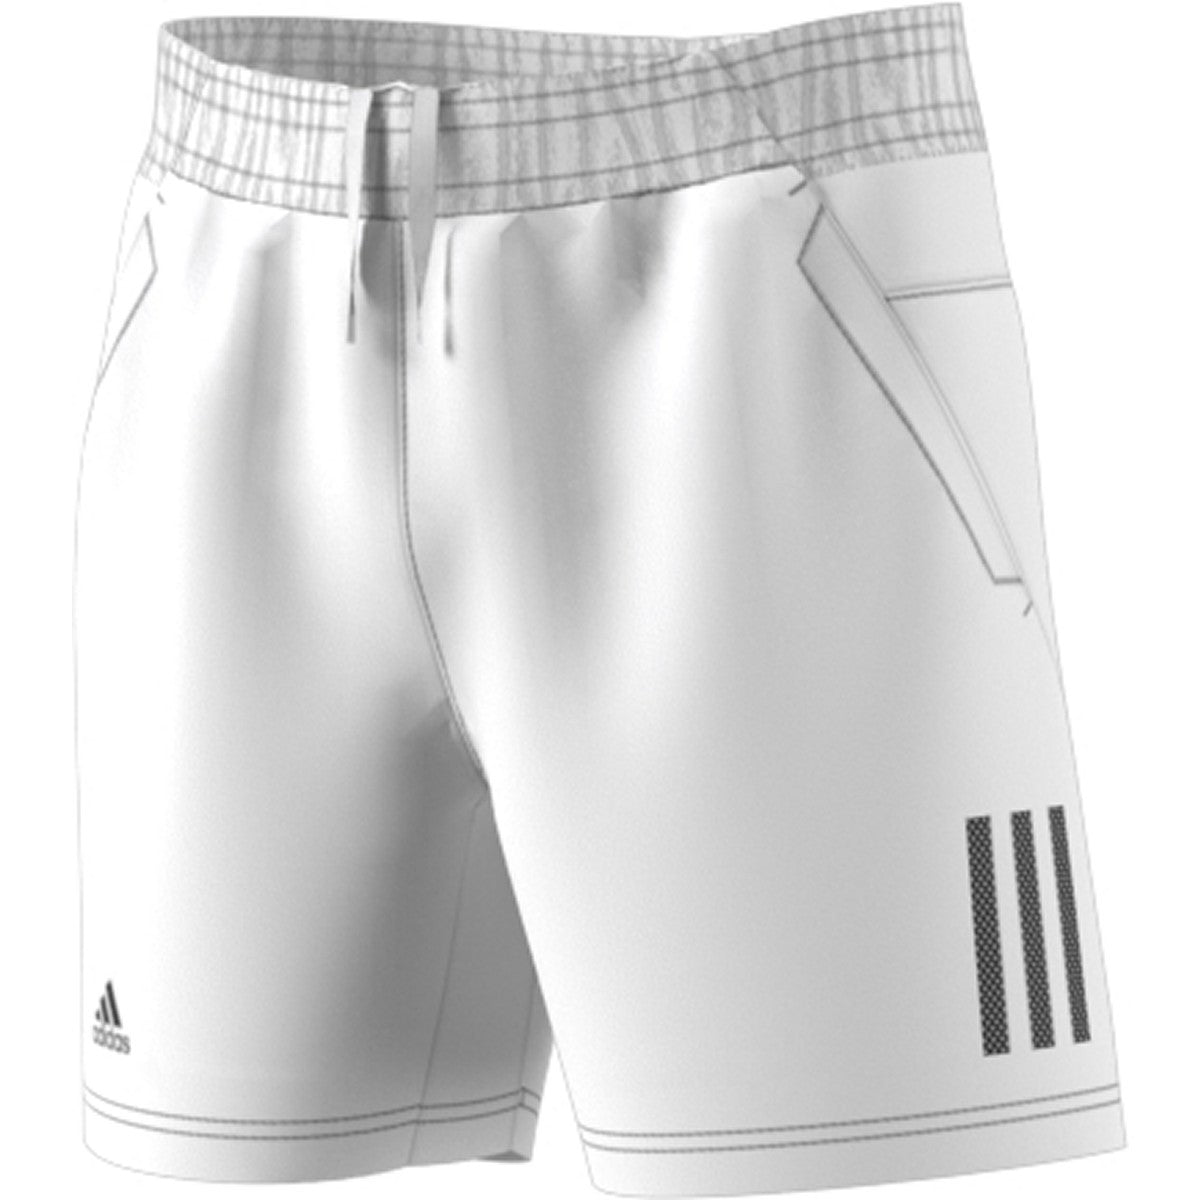 Adidas Boys Club 3STR Short    White/Black